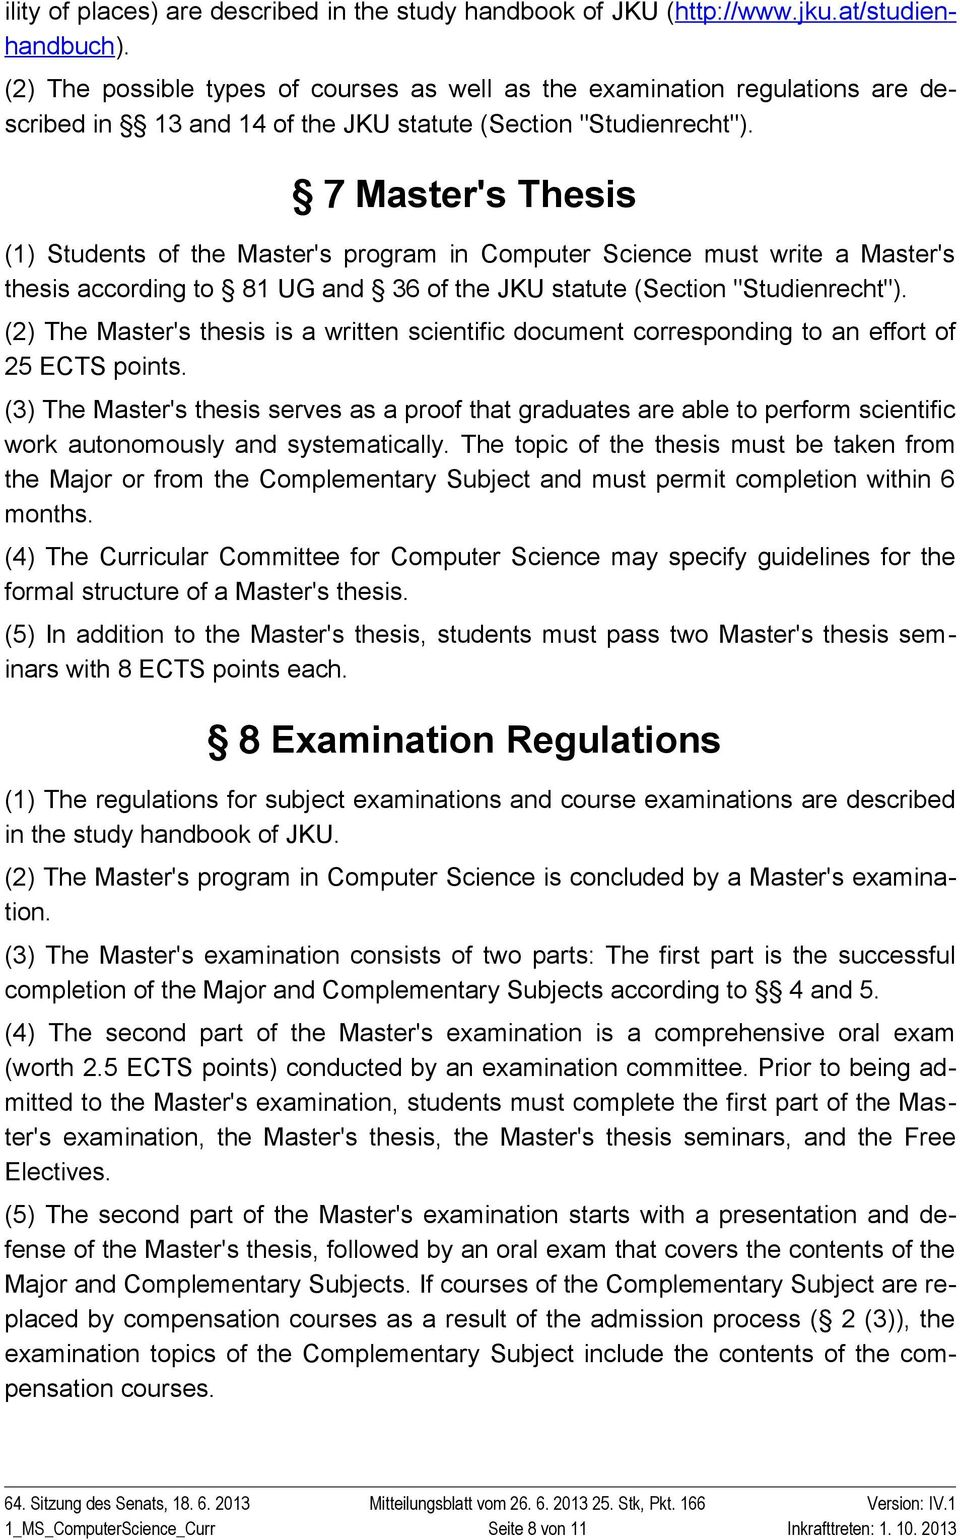 "7 Master's Thesis (1) Students of the Master's program in Computer Science must write a Master's thesis according to 81 UG and 36 of the JKU statute (Section ""Studienrecht"")."